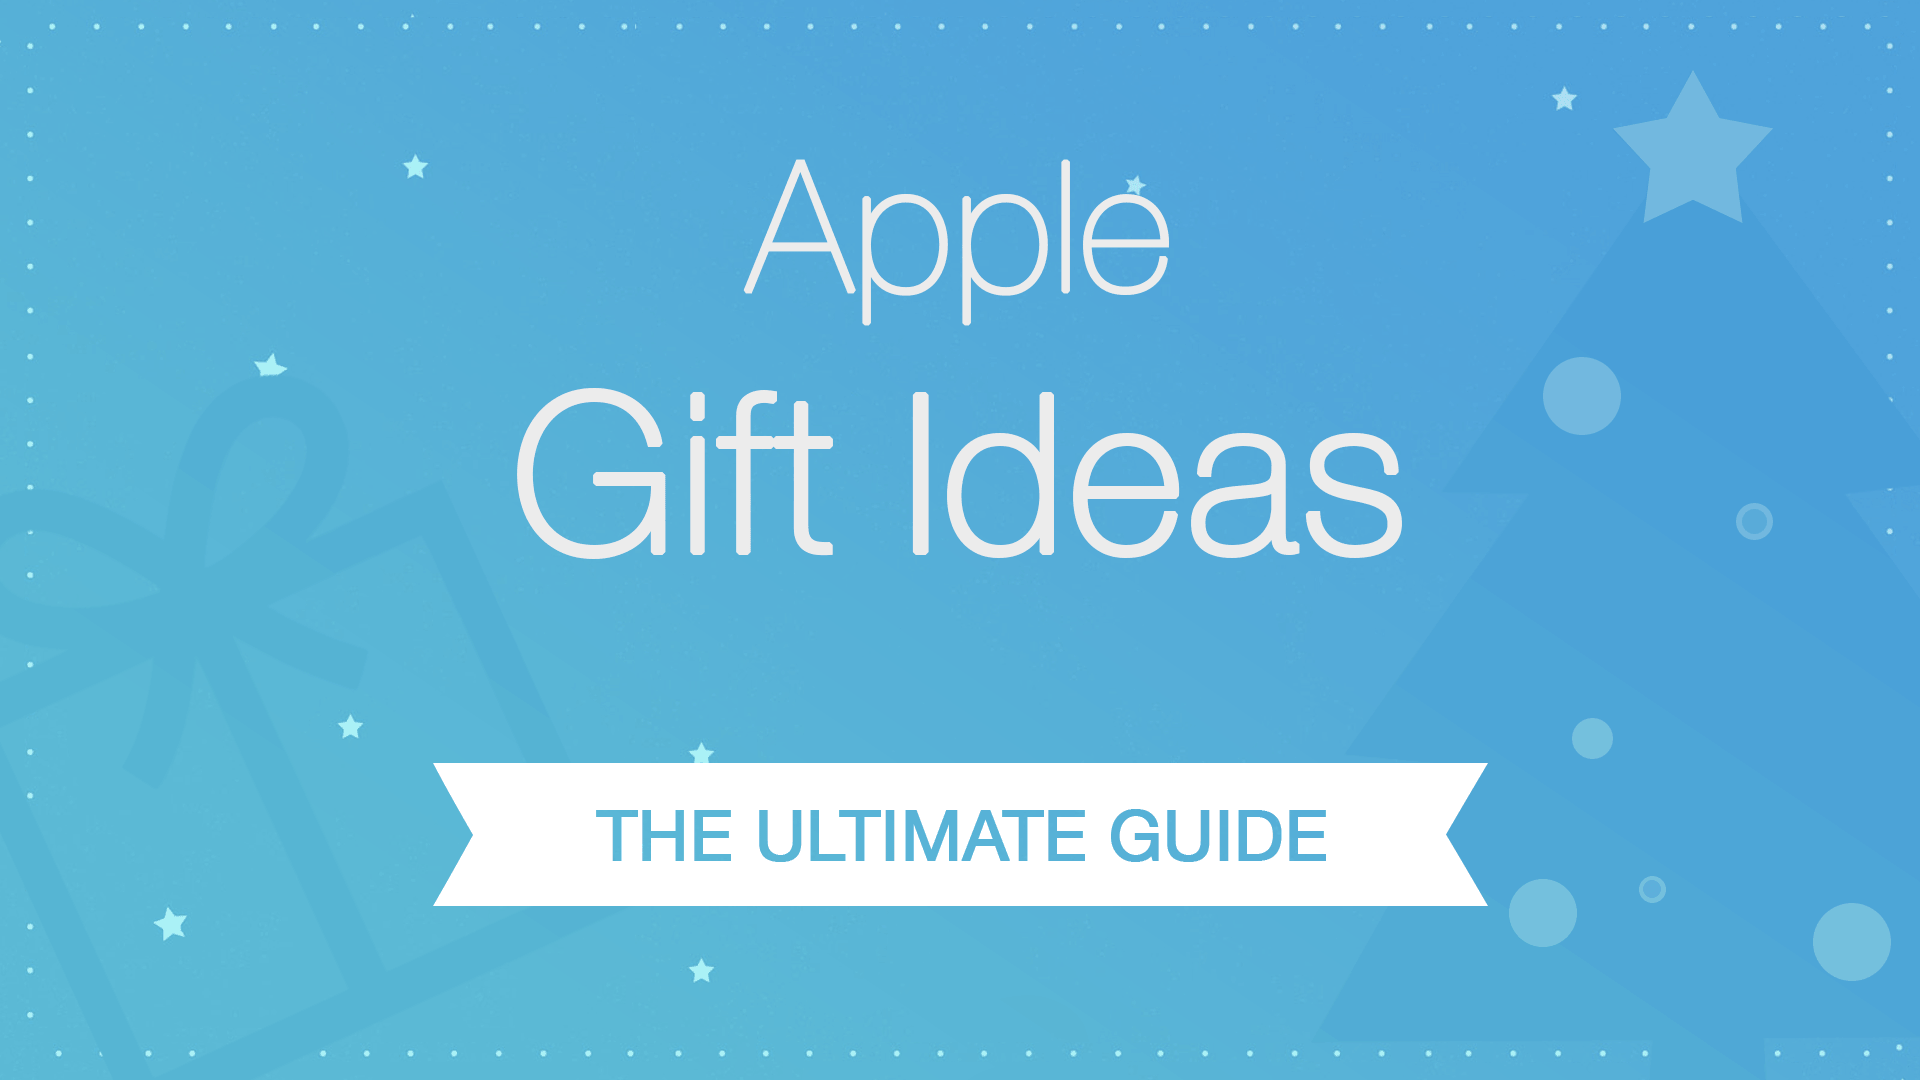 apple gift ideas for Holiday Shopping